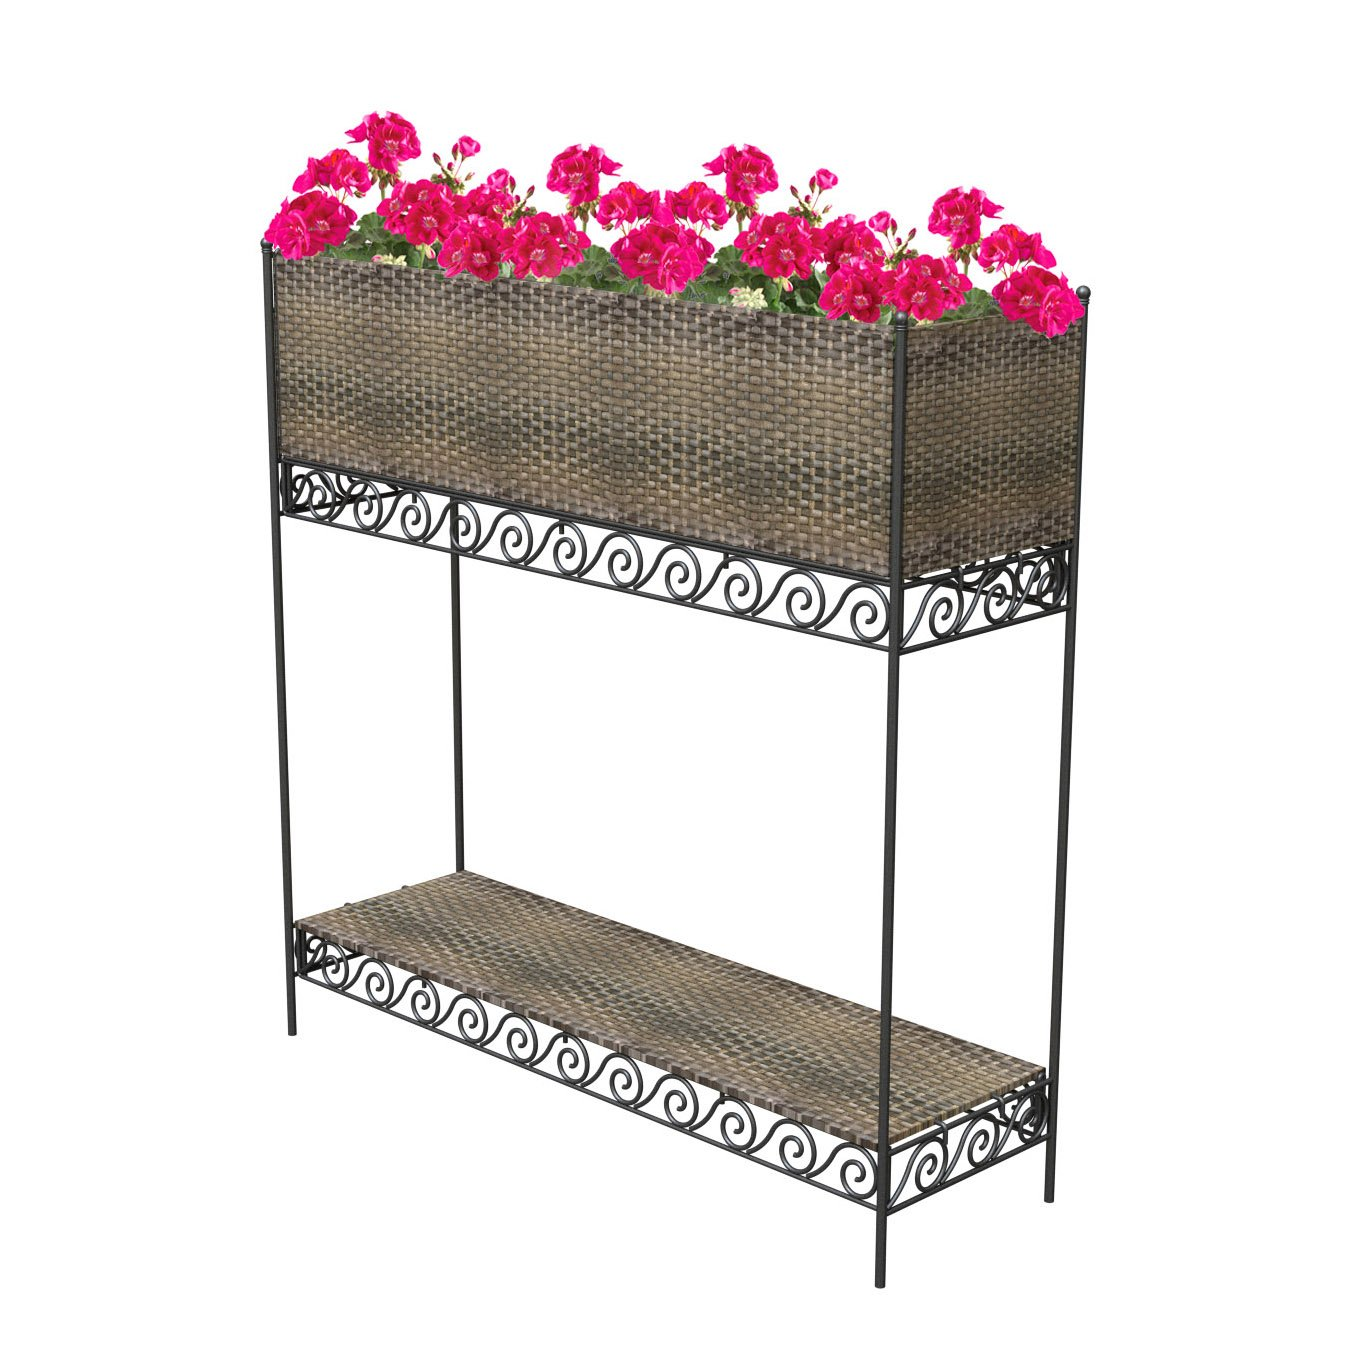 Panacea 82316 Woven Resin Wicker Rectangle Planter on Stand